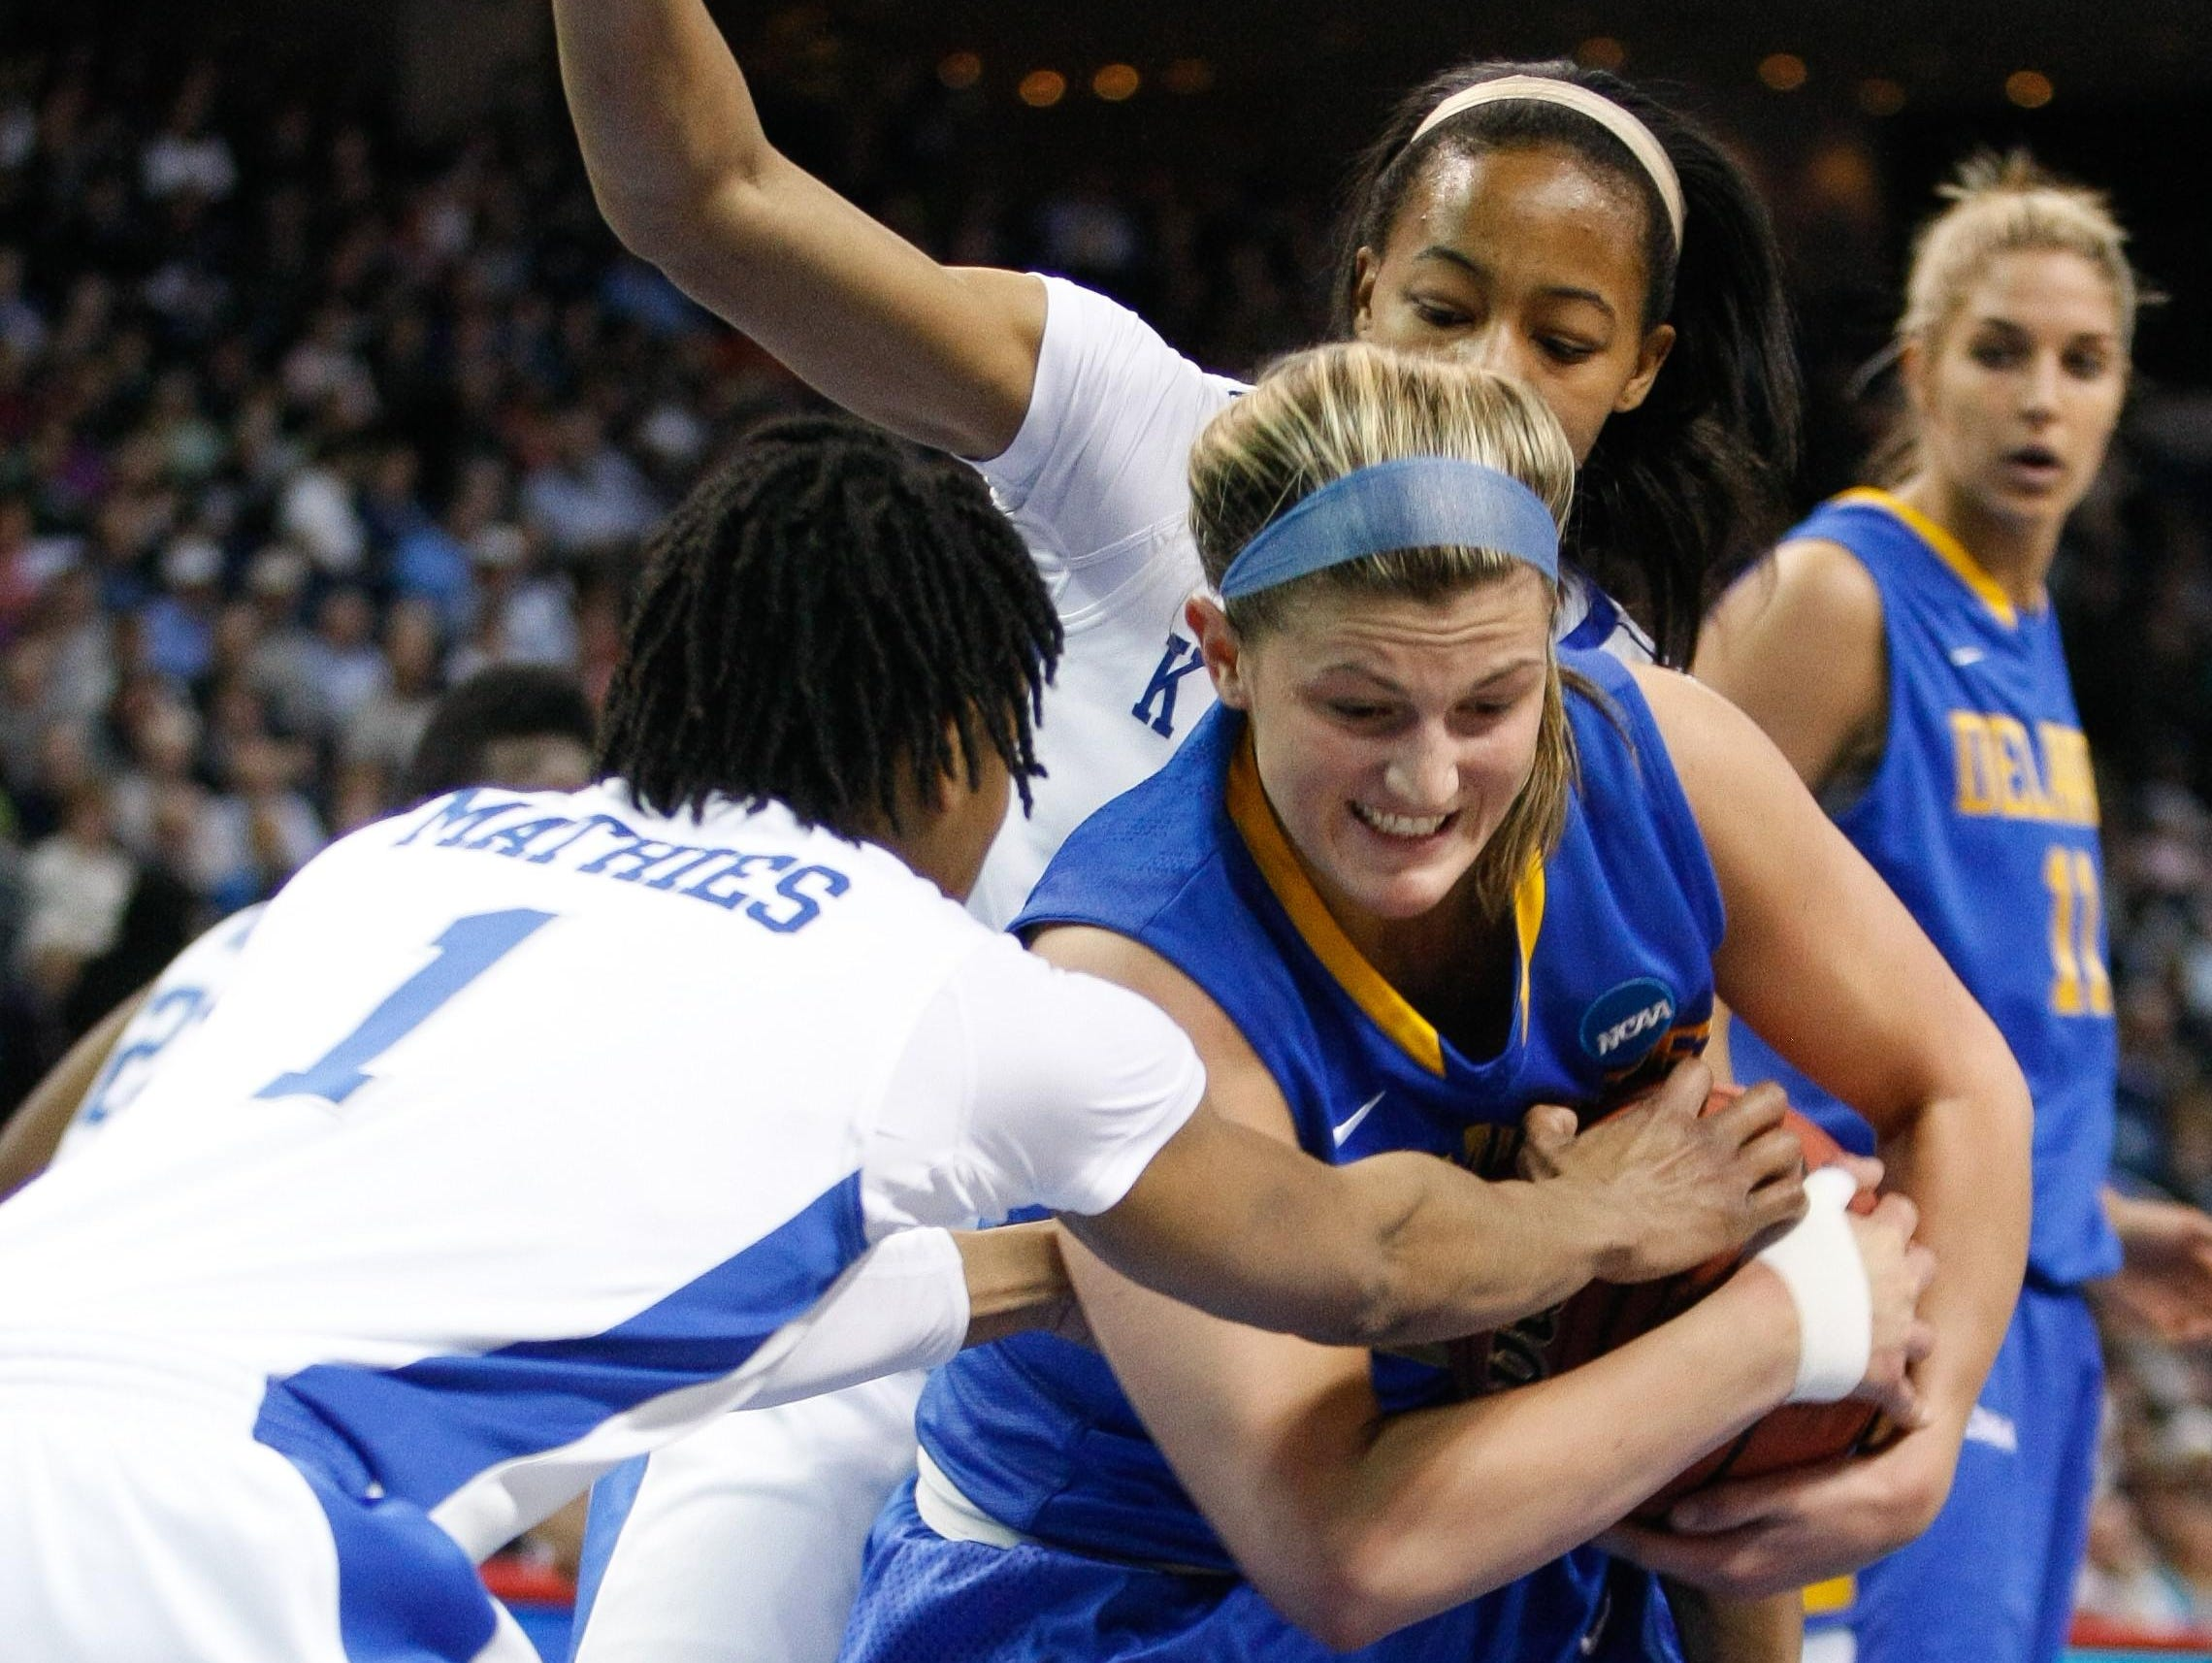 Delaware guard Lauren Carra snags the rebound. Delaware takes on Kentucky at Webster Bank Arena in the Regional semi-finals of the 2013 NCAA Division I Women's Basketball Championship in Bridgeport, Ct. Saturday March 30, 2013. SUCHAT PEDERSON/THE NEWS JOURNAL